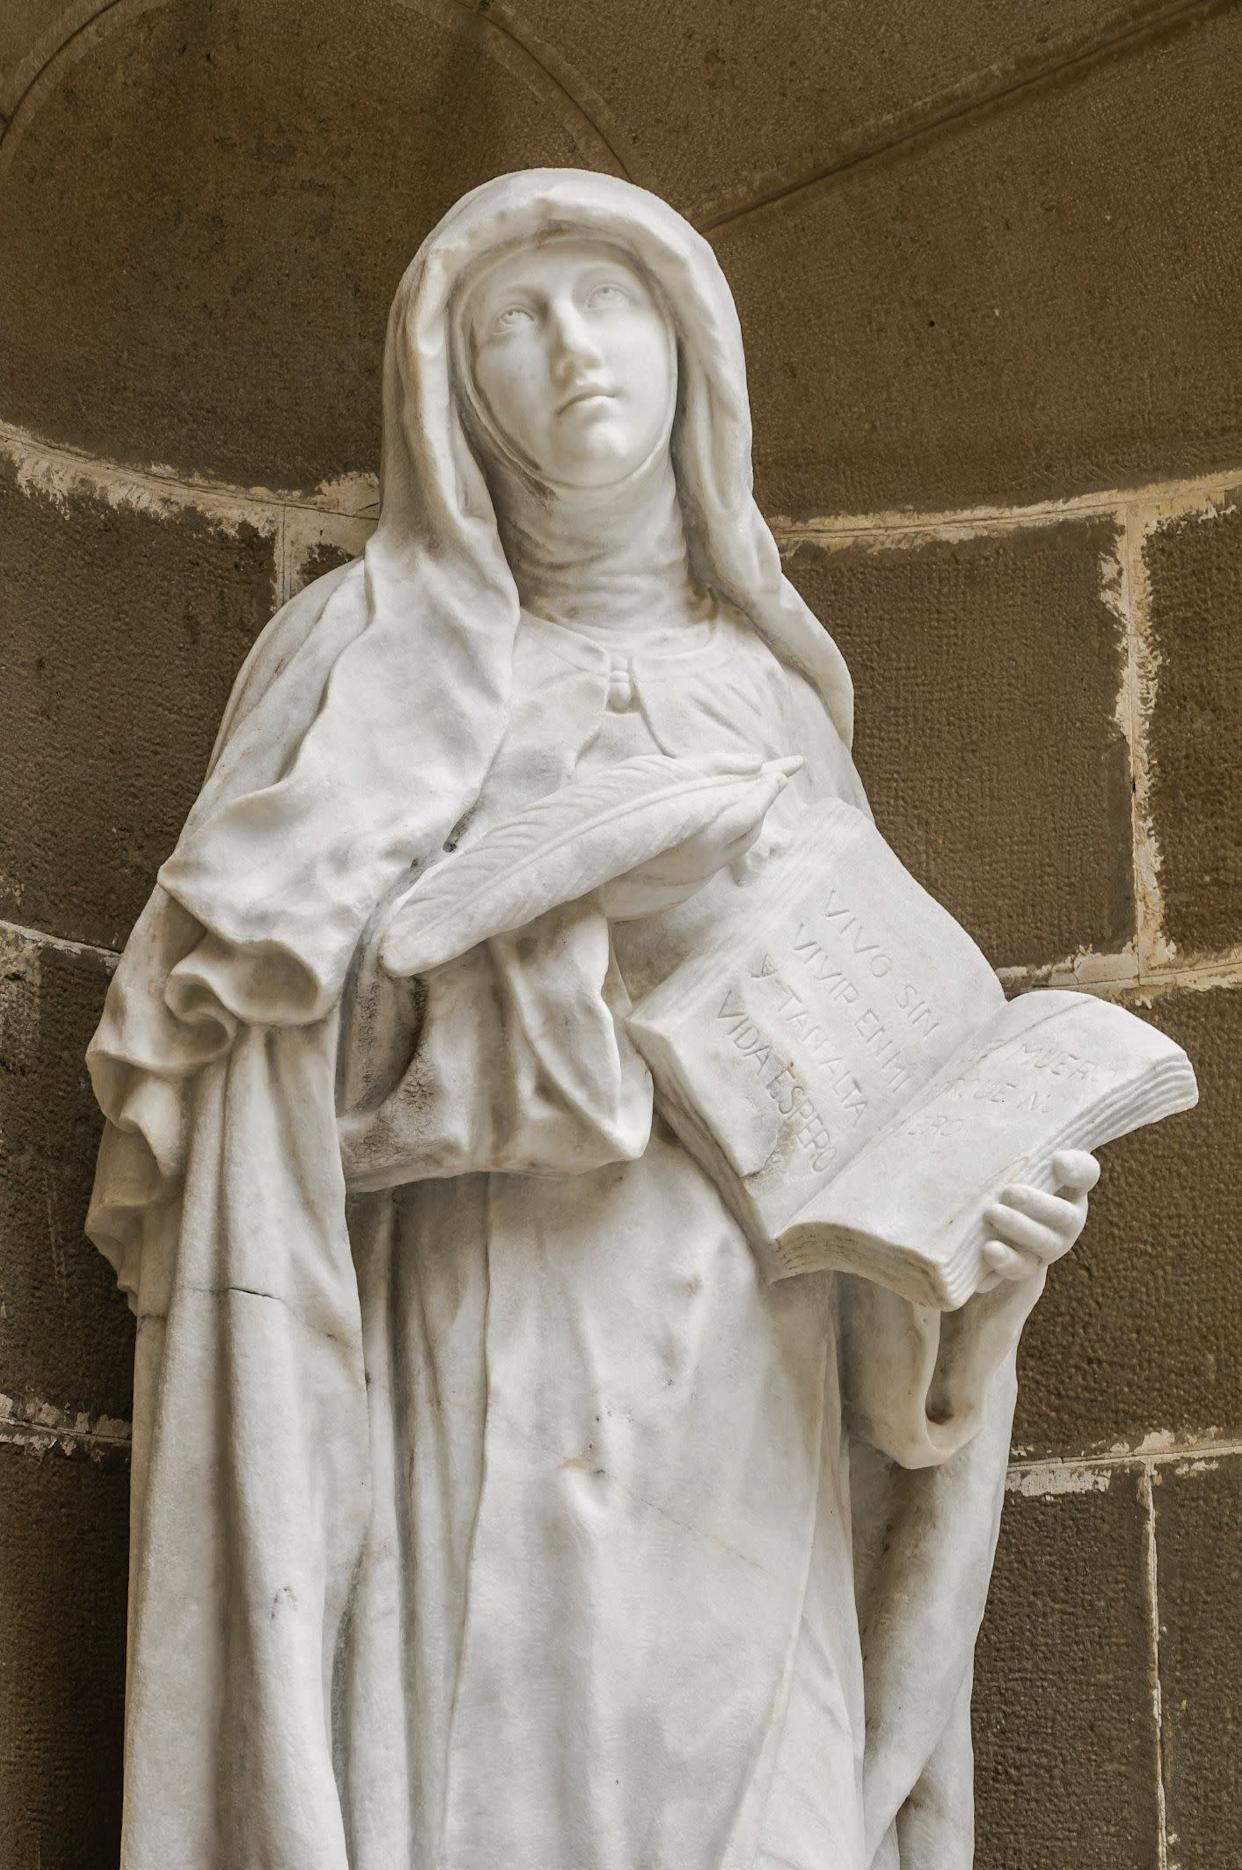 <span>Teresa of Avila</span>&amp;nbsp;was born in Spain during the 16th century to a well-to-do family. Teresa was fascinated by stories of the Christian saints and martyrs from a young age and explored these interests through mystical games she played with her brother, Roderigo. Her early efforts to join a convent were interrupted by the disapproval of her father, as well as several bouts of malaria. She turned instead to quiet prayer and contemplation and attained what she described in her autobiography as the &quot;prayer of union,&quot; in which she felt her soul absorbed into God&amp;rsquo;s power. She went on to join a convent and was said to have at one point restored her young nephew to health after he was crushed by a fallen wall. The episode was presented at the process for Teresa's canonization, which took place in 1662.